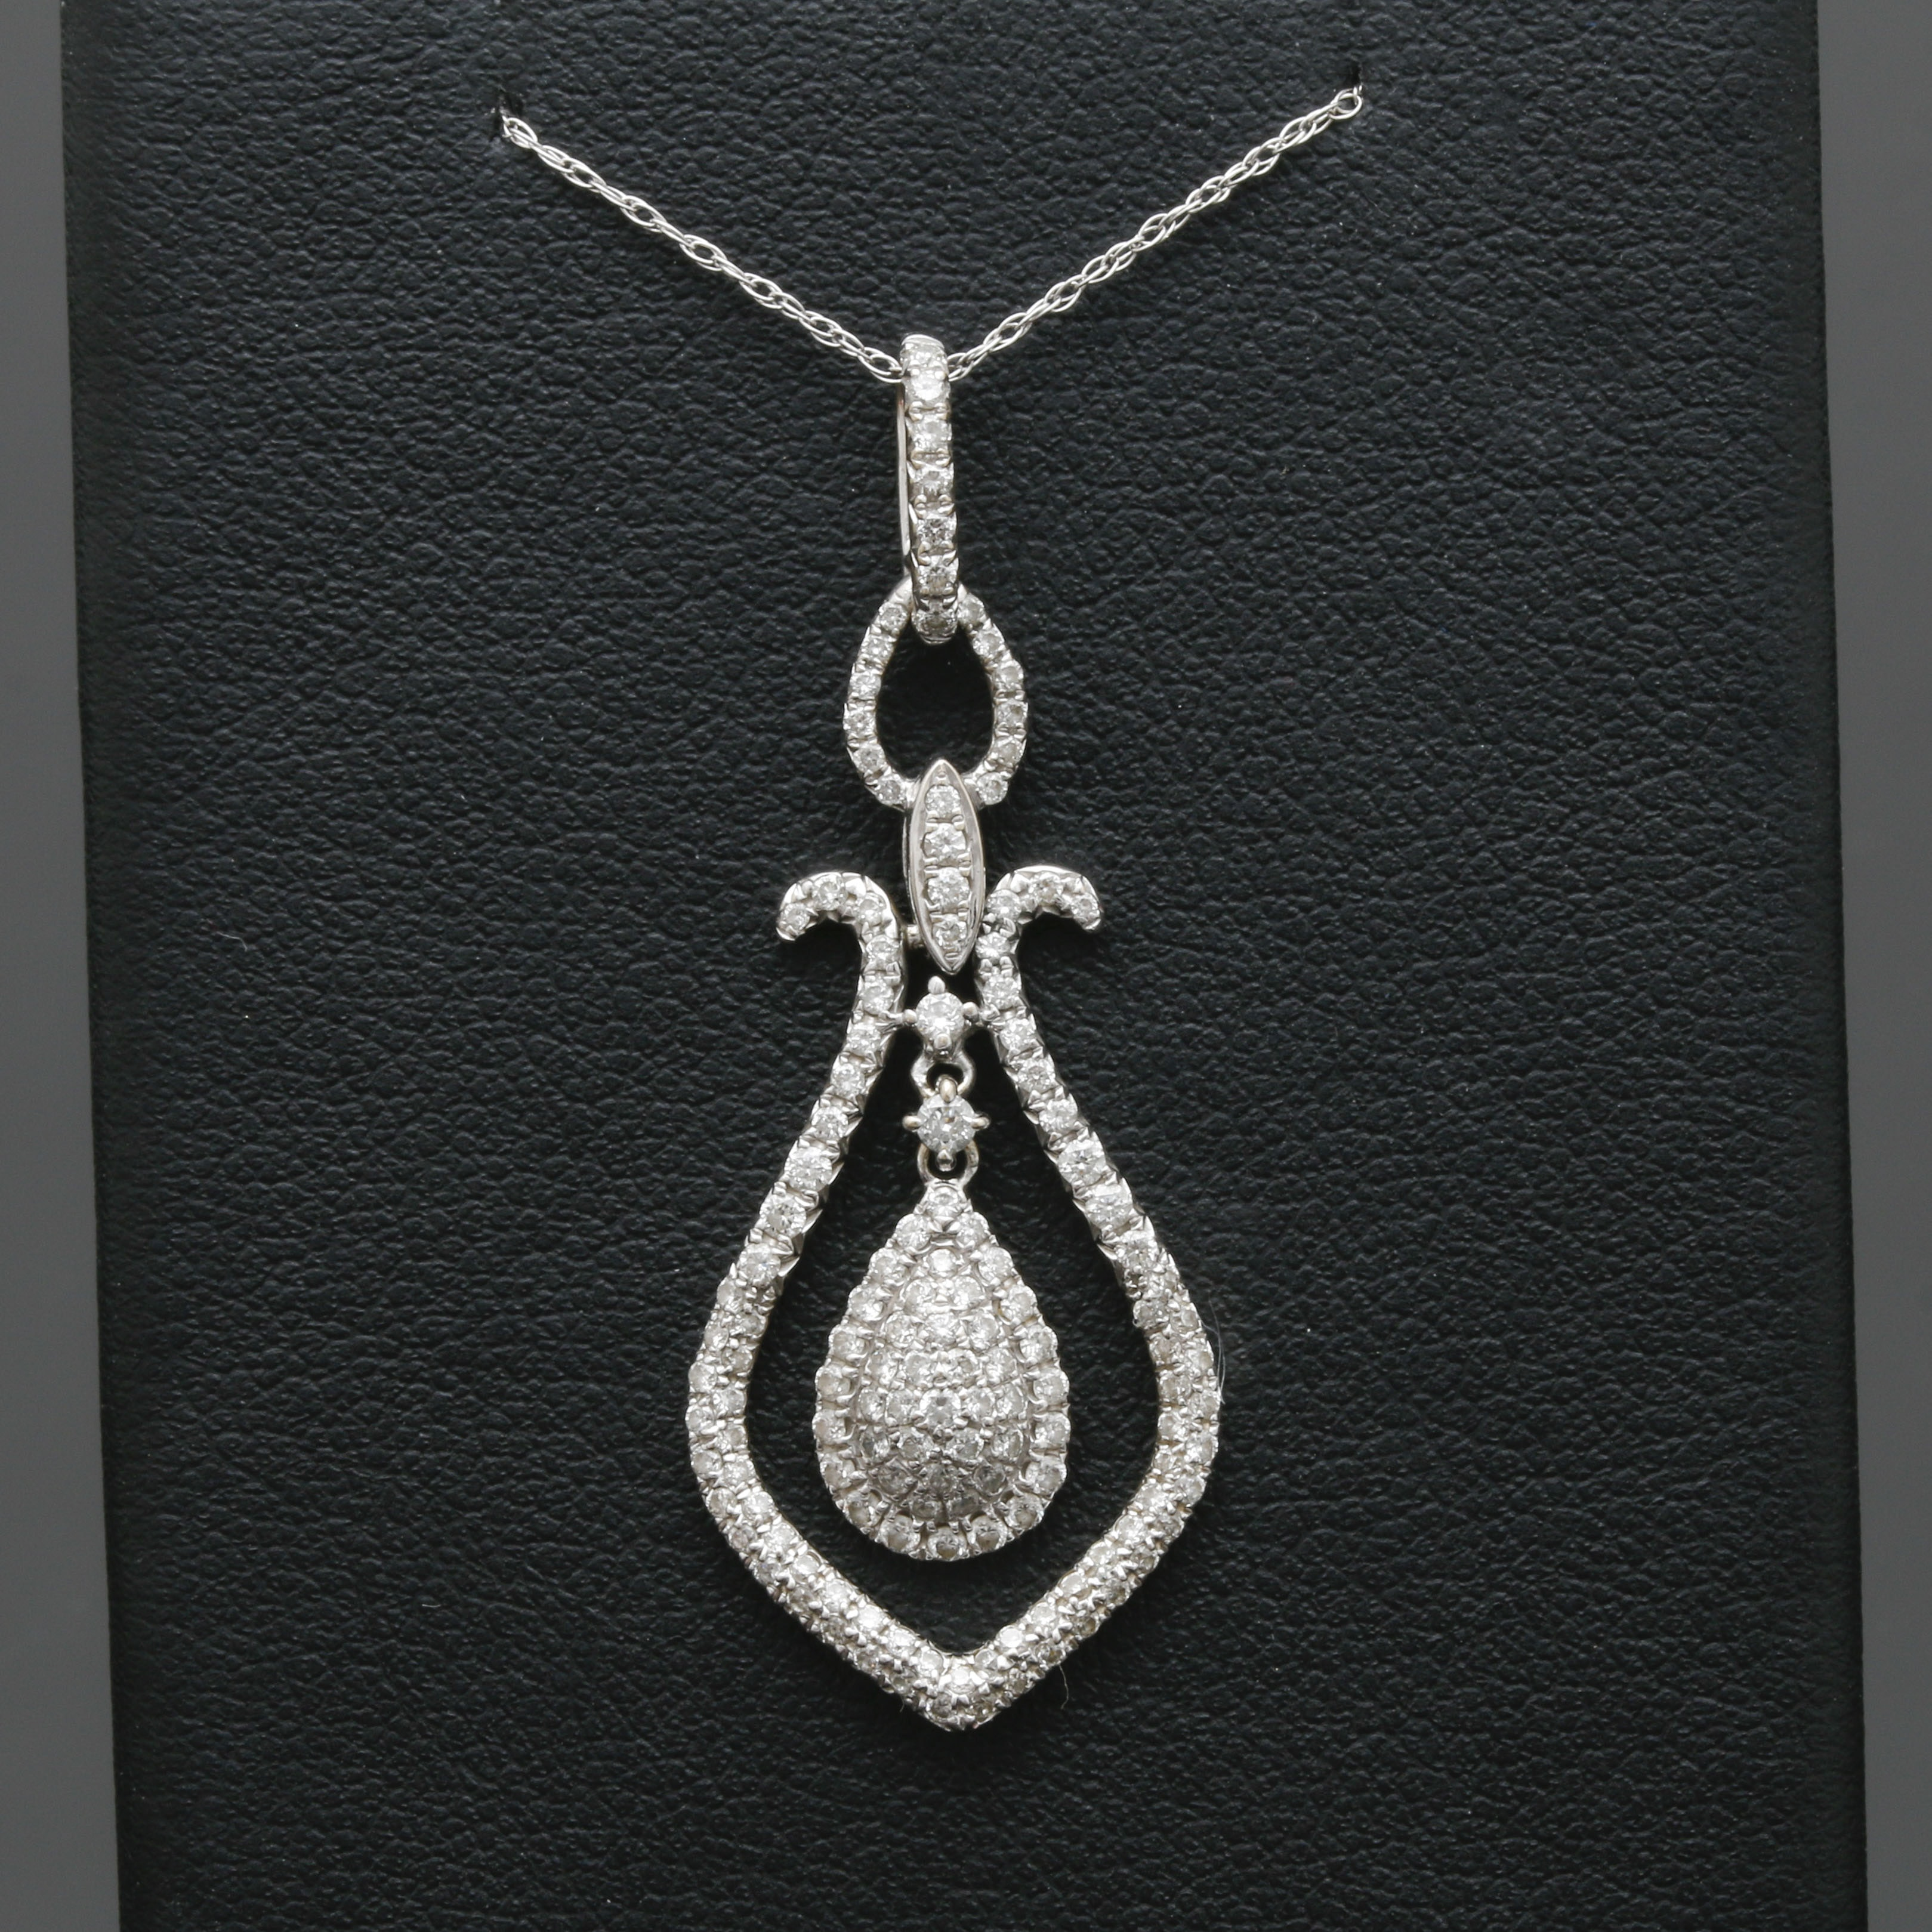 14K and 18K White Gold 0.95 CTW Diamond Drop Pendant Necklace